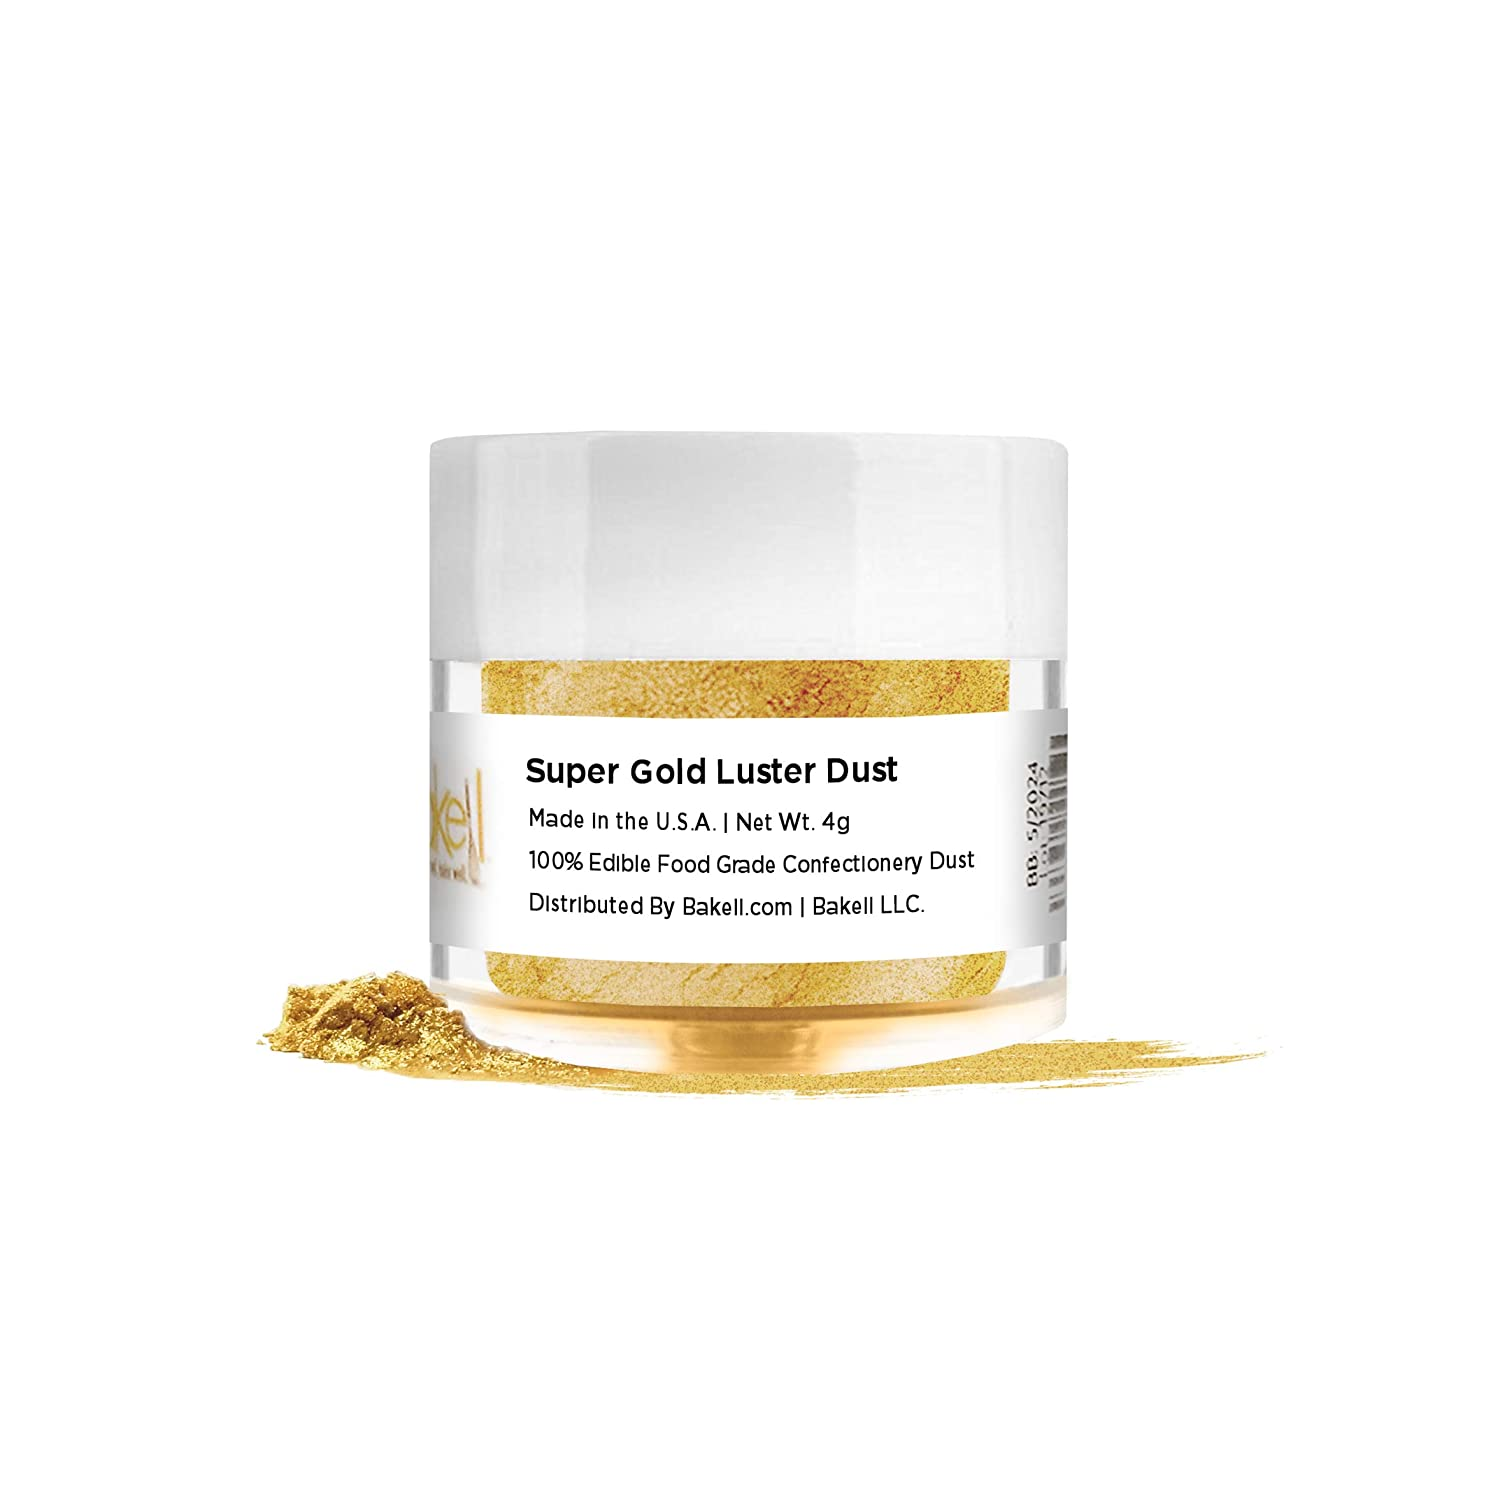 BAKELL Super Intense Gold Edible Luster Dust & Paint, 4 Gram | LUSTER DUST Edible Powder | KOSHER Certified Paint, Powder & Dust | 100% Edible & Food Grade| Cakes, Vegan Paint & Dust (Super Gold)